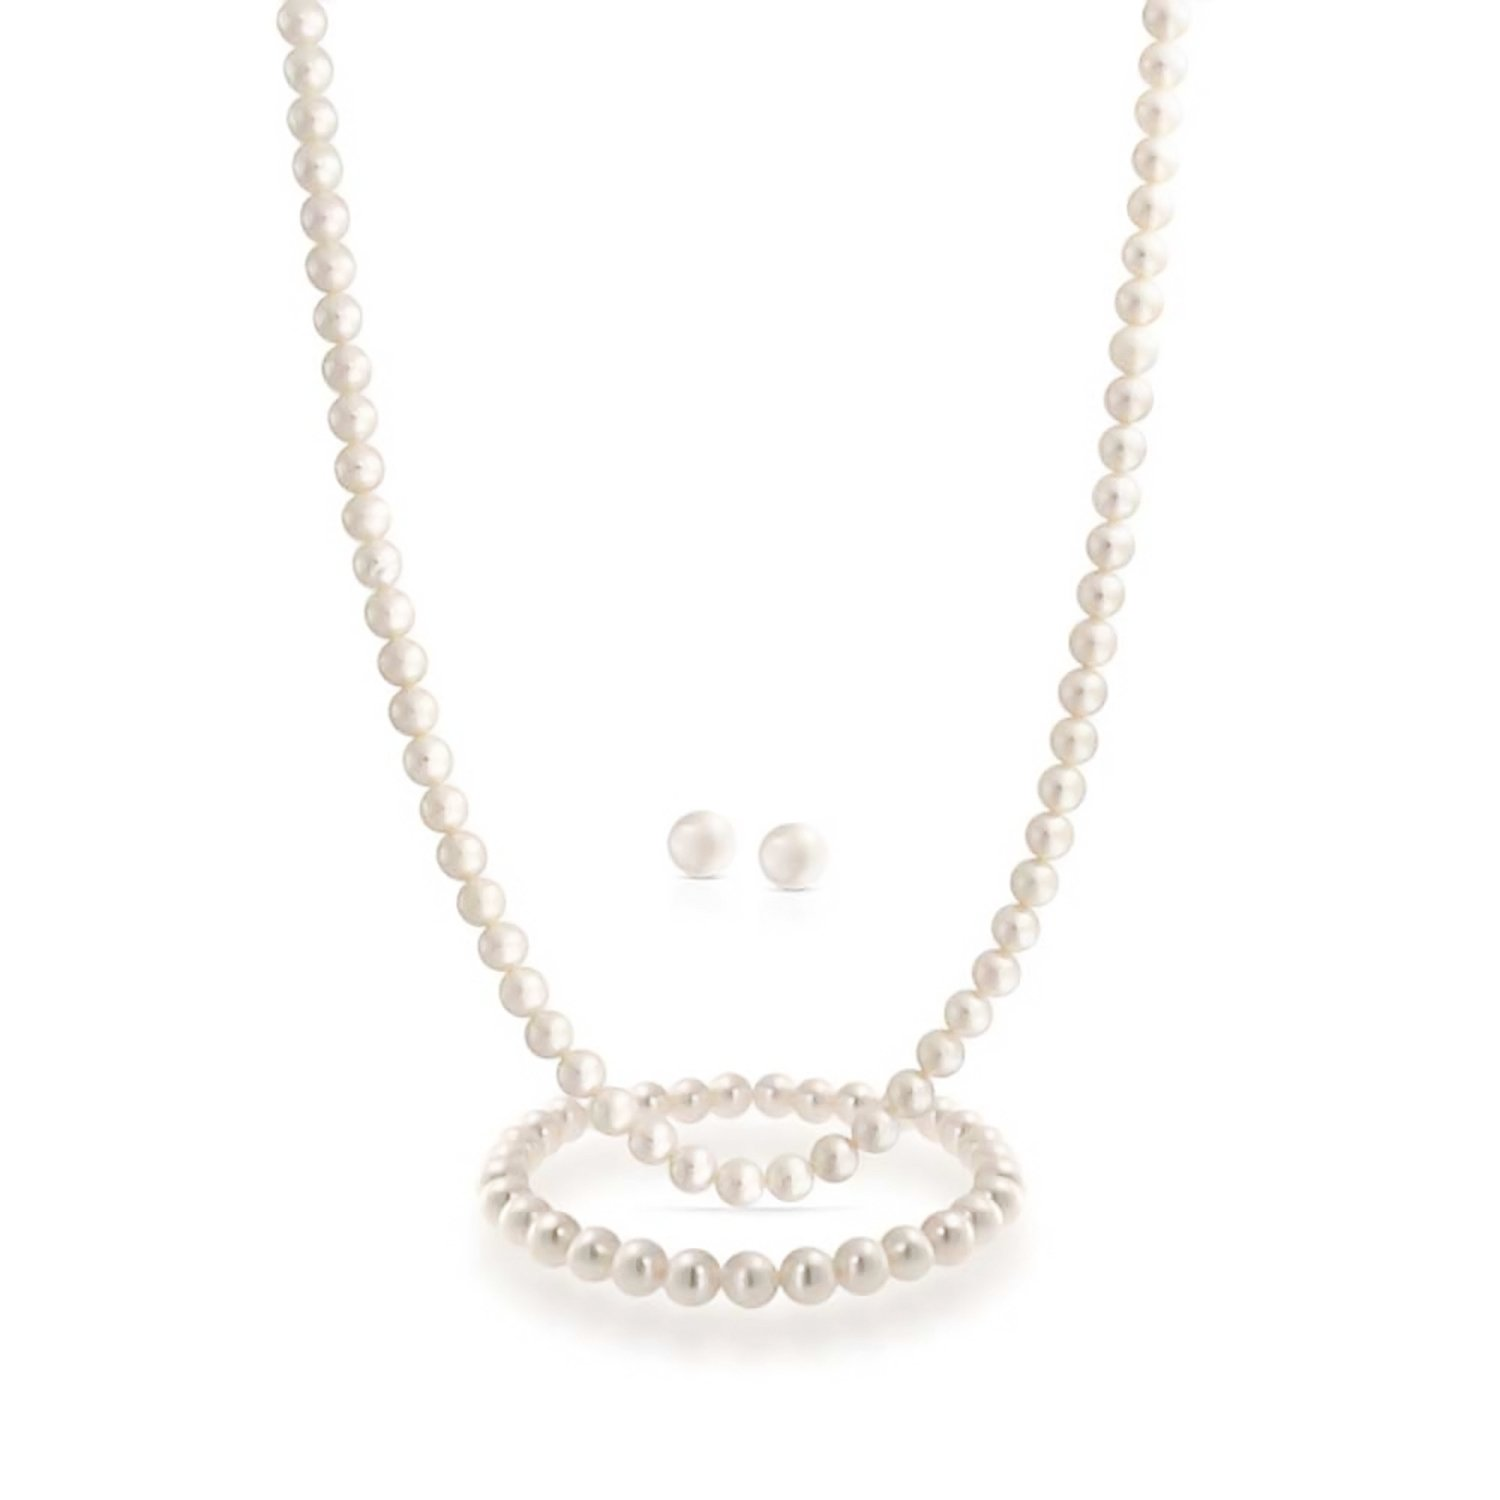 White Freshwater Cultured Pearl Necklace Earrings Bracelet Set Sterling Silver Bling Jewelry CB-50005